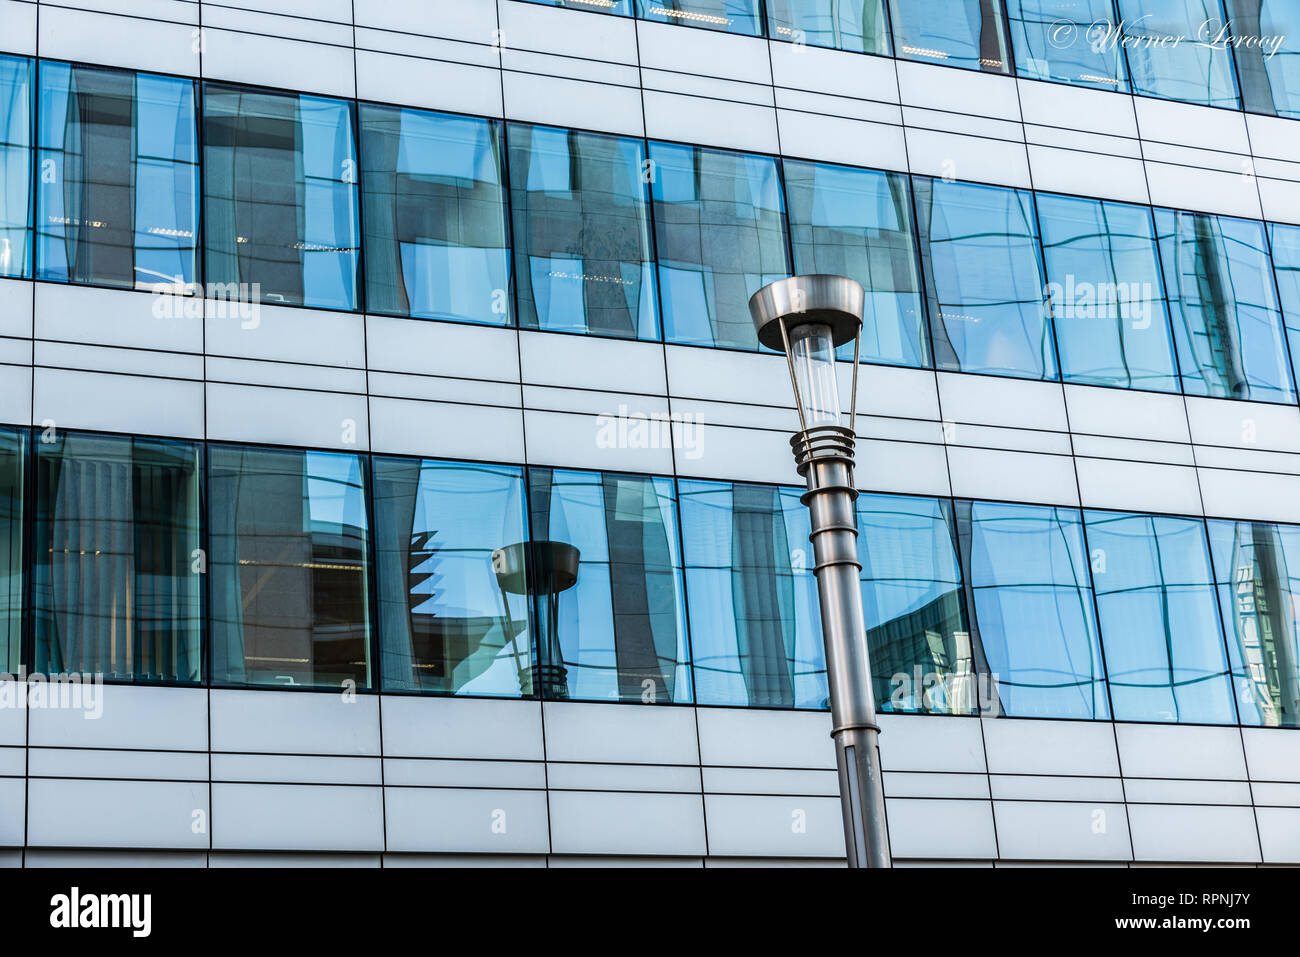 City of Brussels / Belgium - 02 15 2019: Abstract